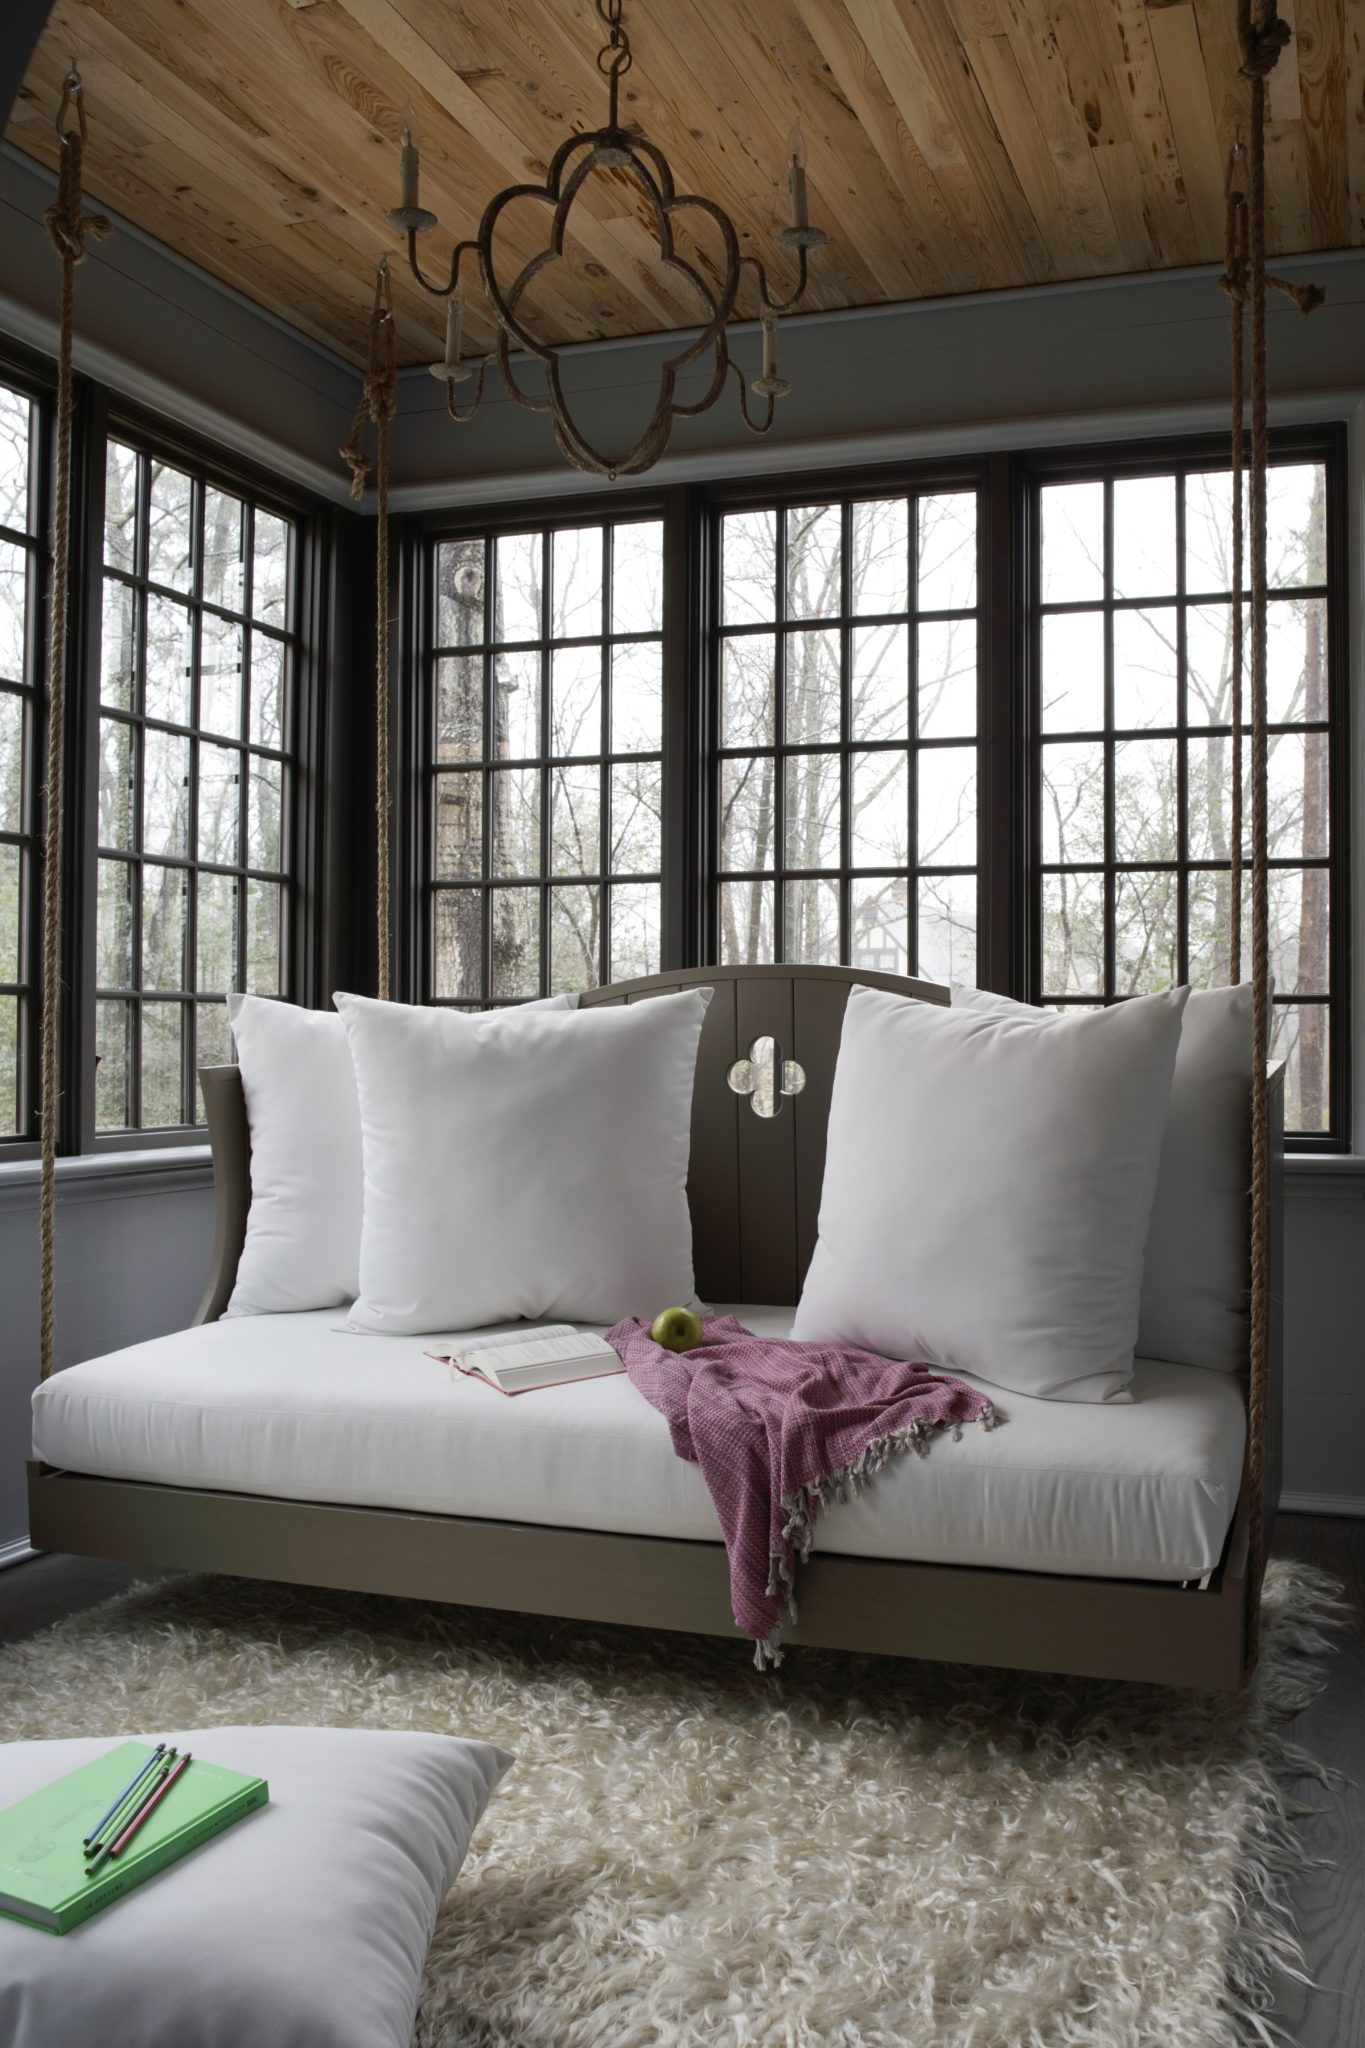 Christopher Architecture & Interiors designed the swing, which was then crafted by Southern Komfort Bedswings.